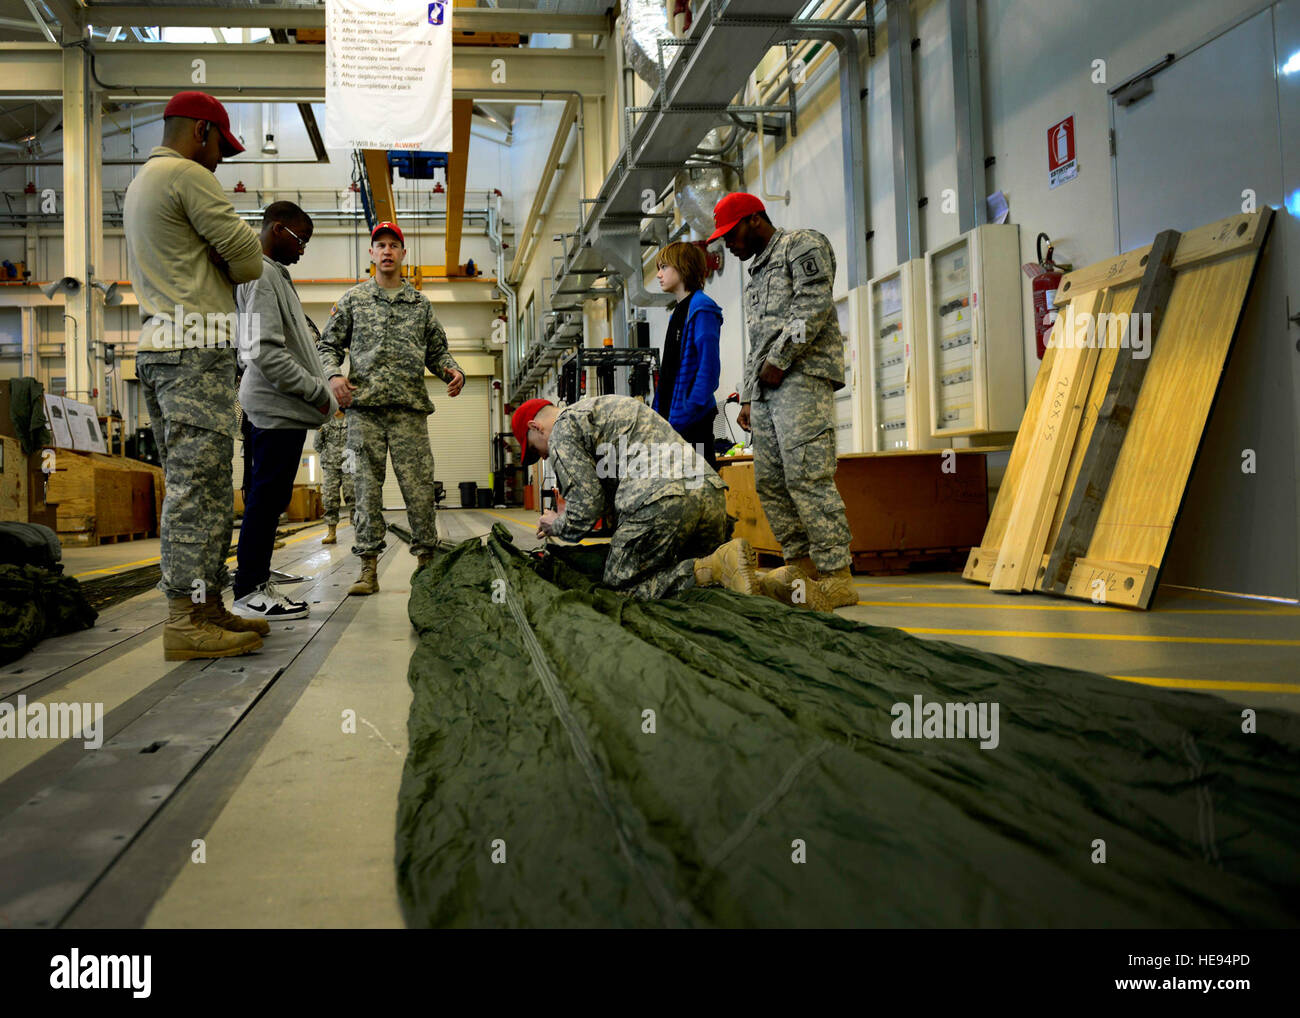 U.S. Army parachute riggers show Aviano Middle/High School students a heavy equipment parachute during job shadow - Stock Image